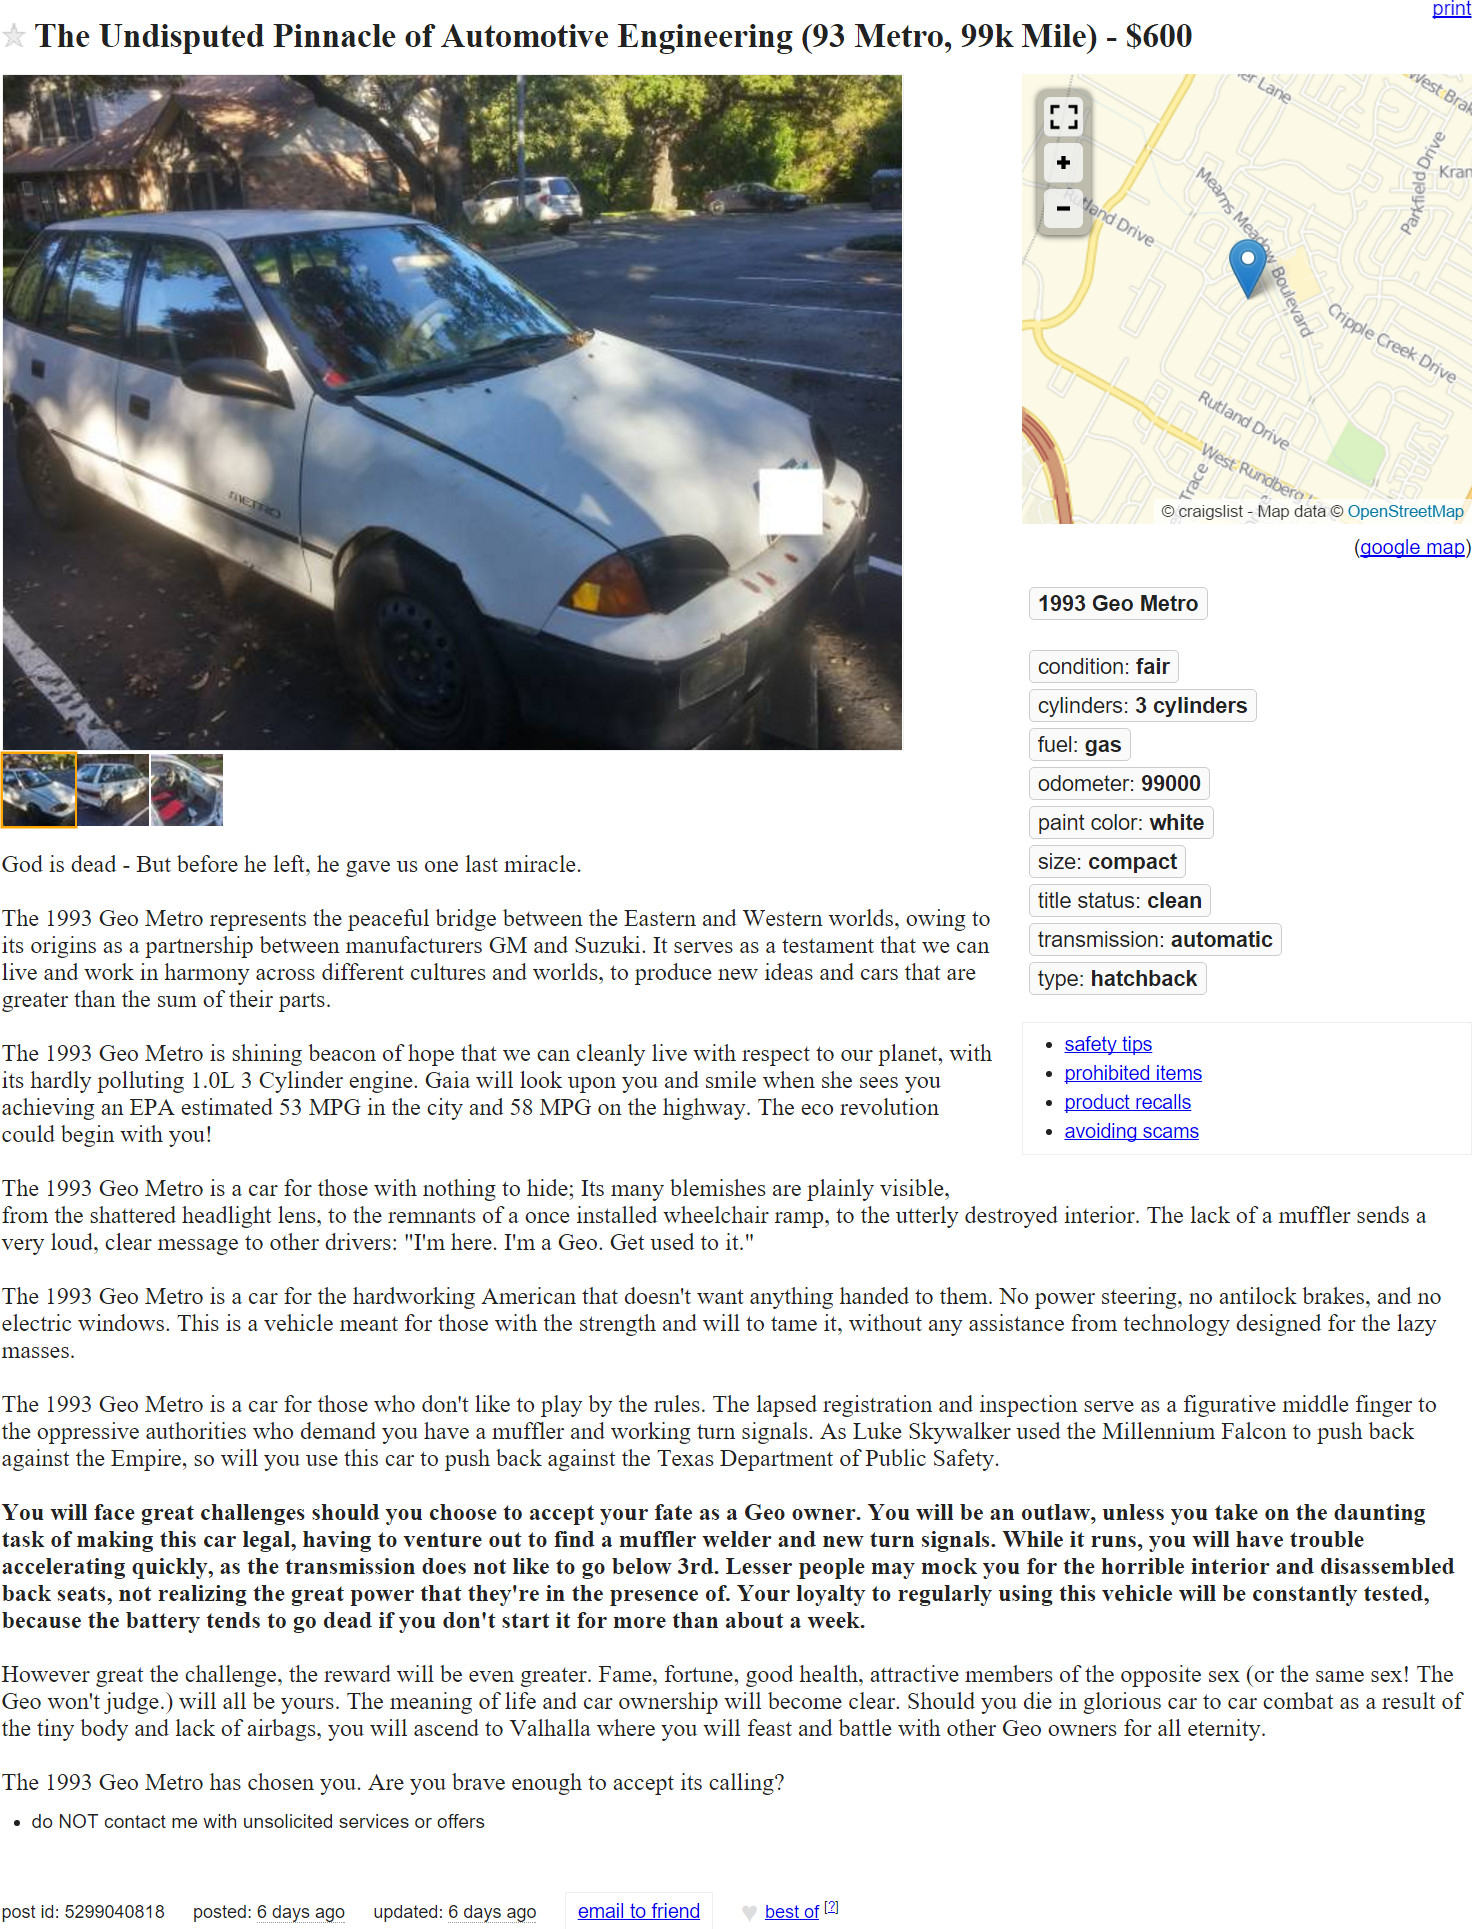 Austin Com This Epic Craigslist Ad For A 1993 Geo Metro Is Everything